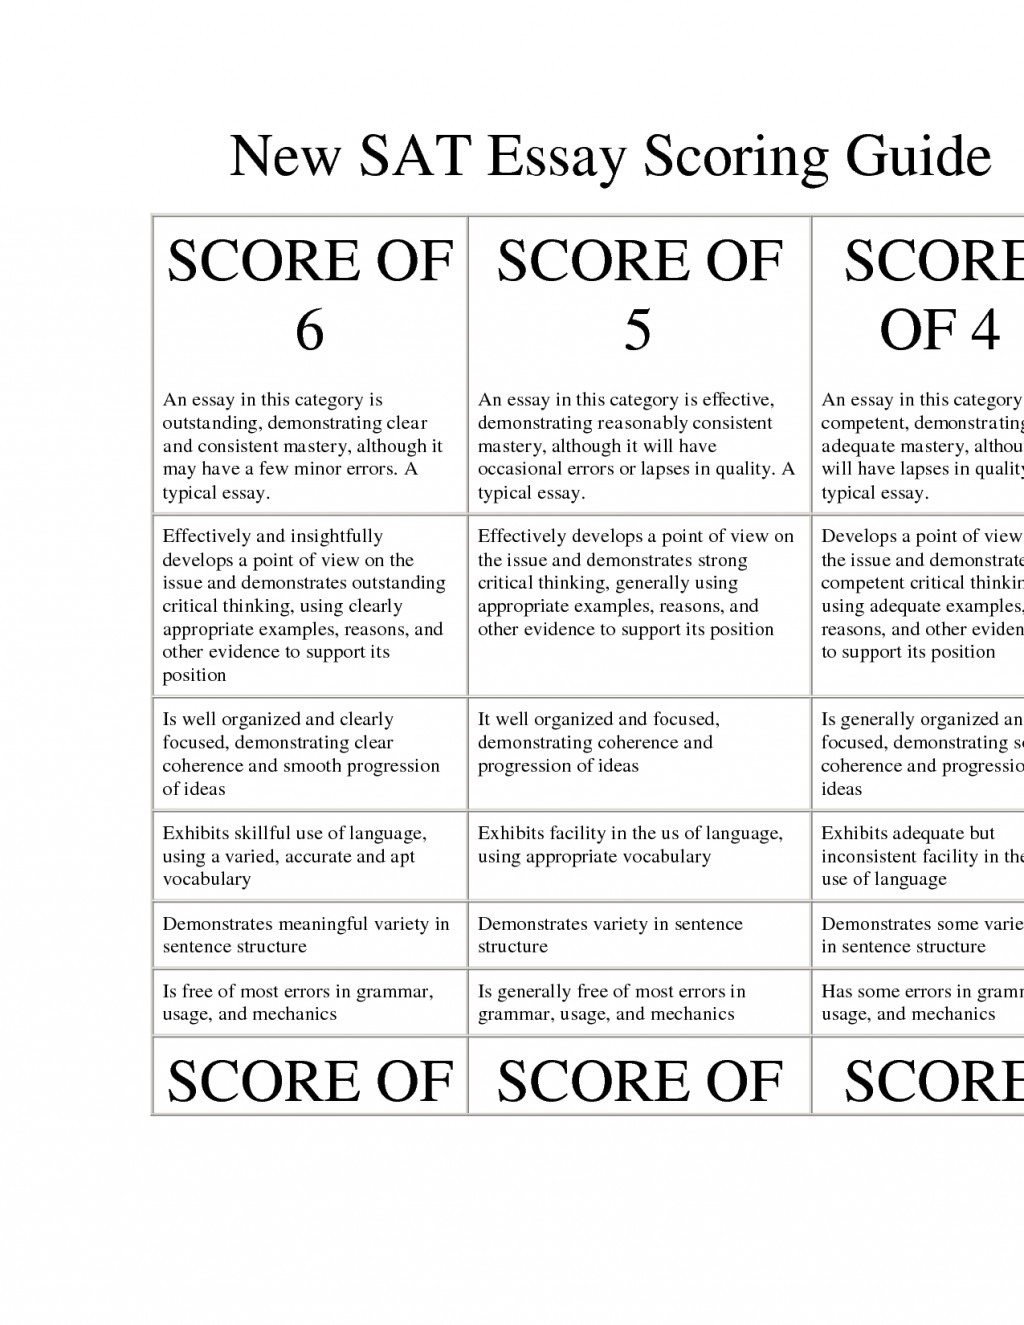 010 Essay Score Sat Goal Blockety Co Writing Percentiles Quotes Quotesgram Is There An On The L Examples Sample Tipsmat Range Prompts Time Limit Example Wondrous Tips For Persuasive Techniques Strategy Large